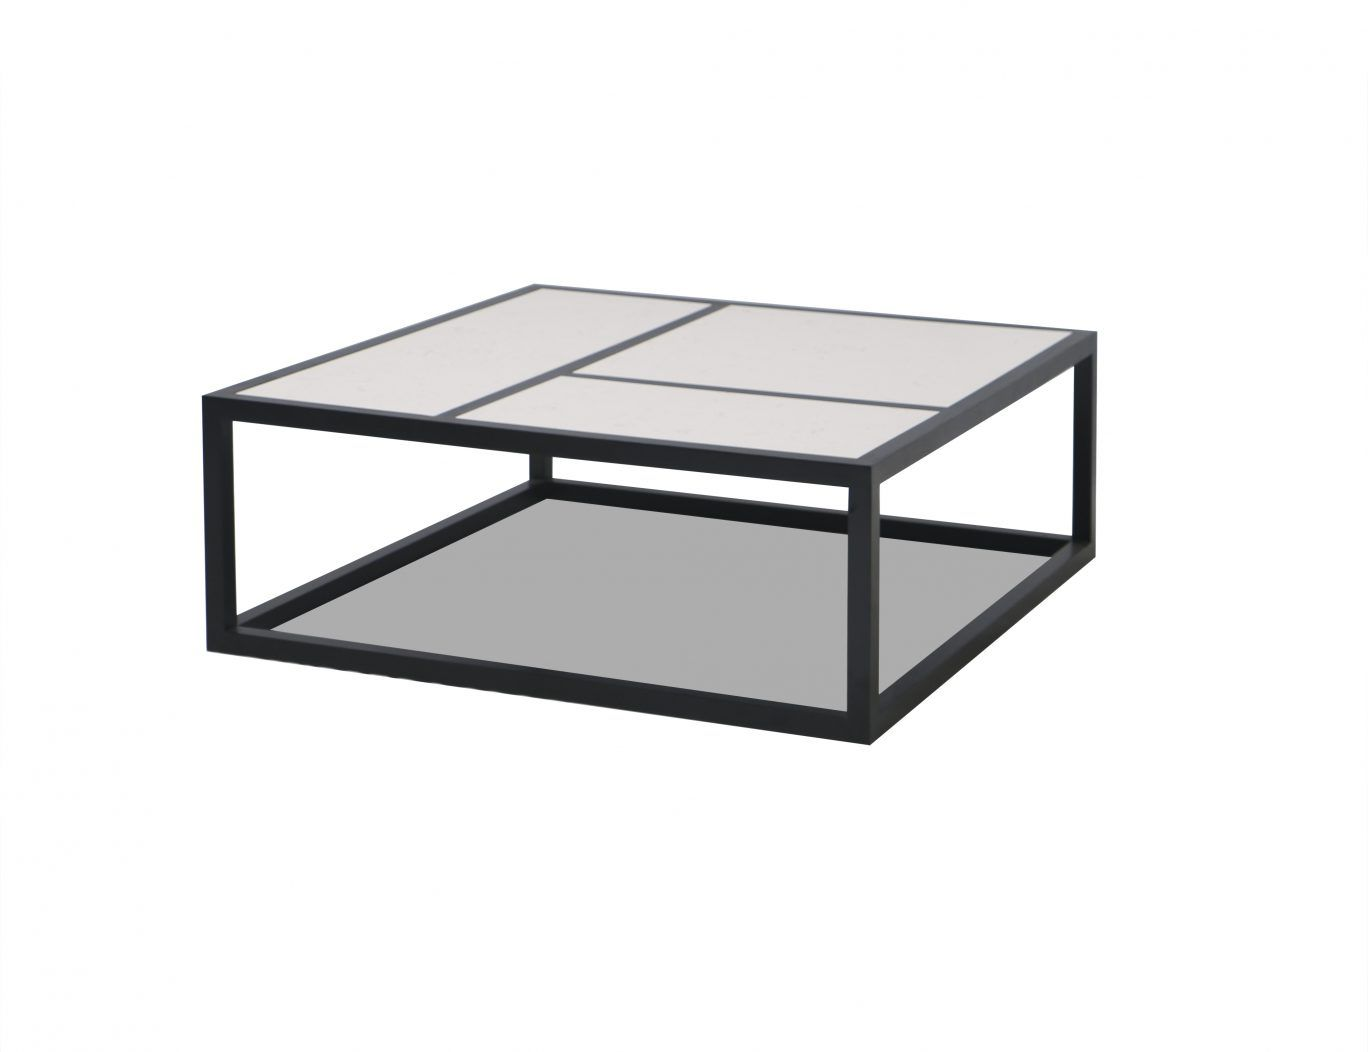 Roux marble square coffee table liang eimil coffee